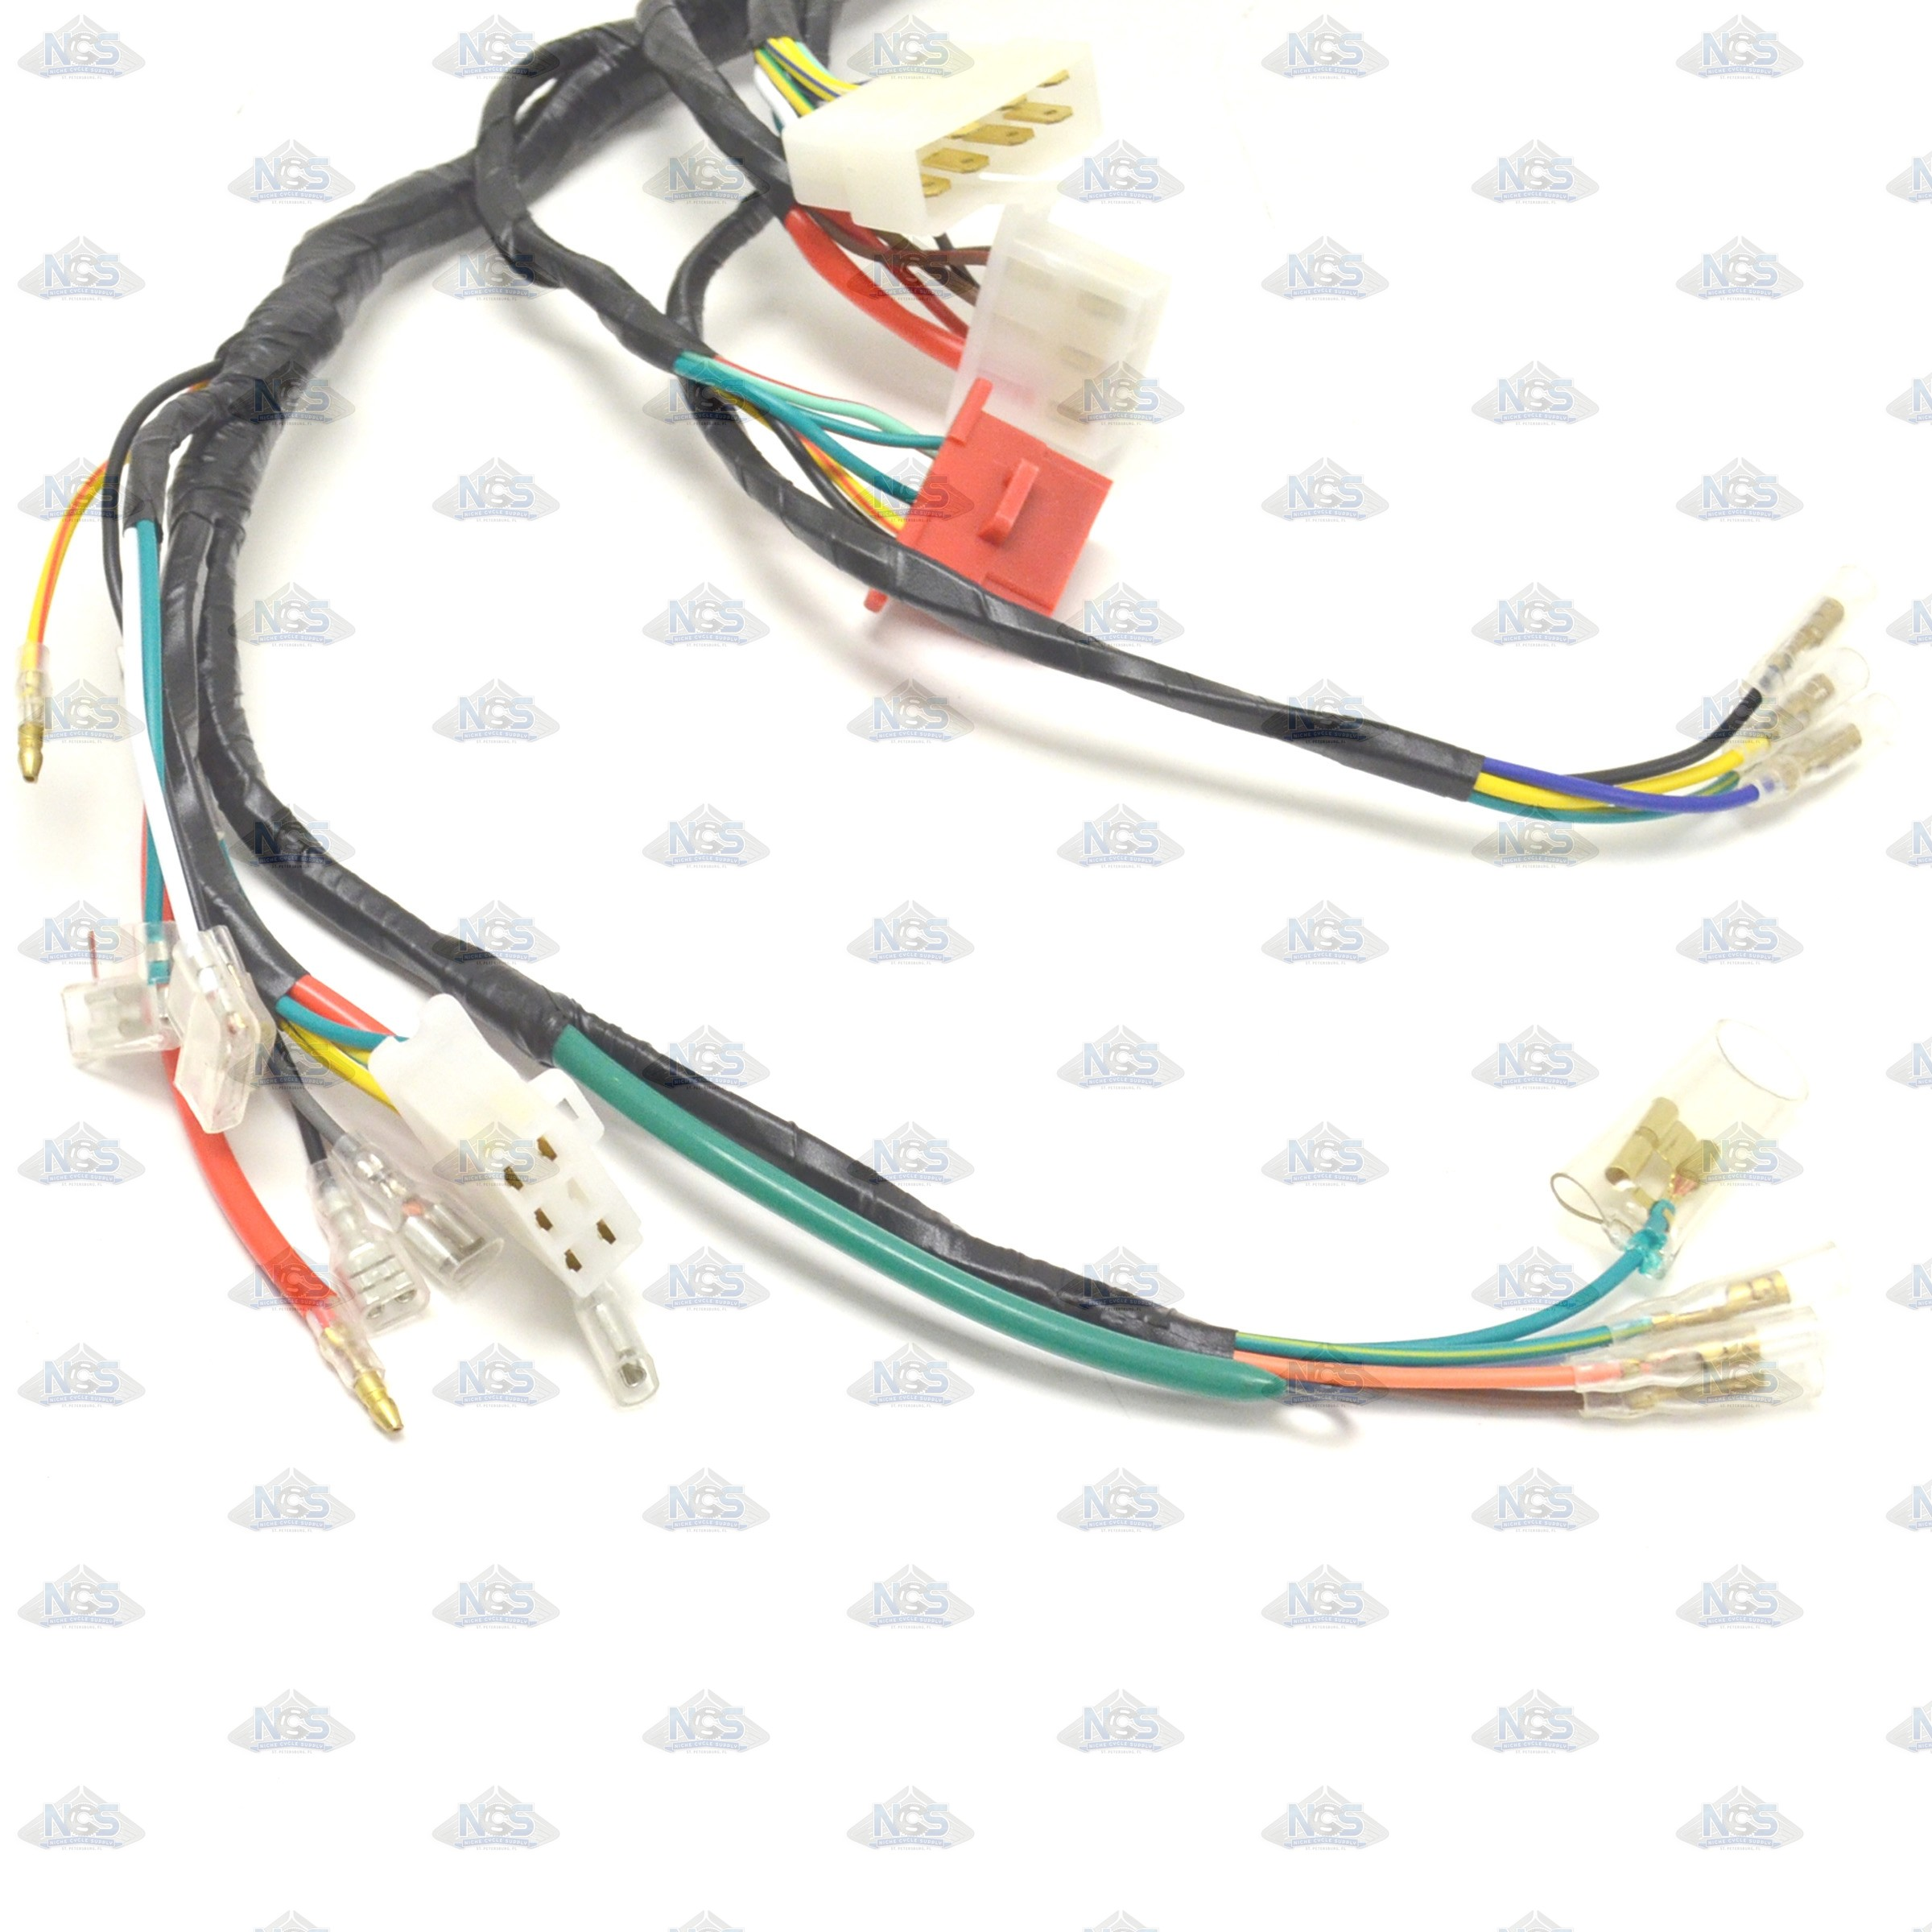 Cb750k Wiring Harness Auto Electrical Diagram Wire For A 73 Ironhead 21 Images Honda